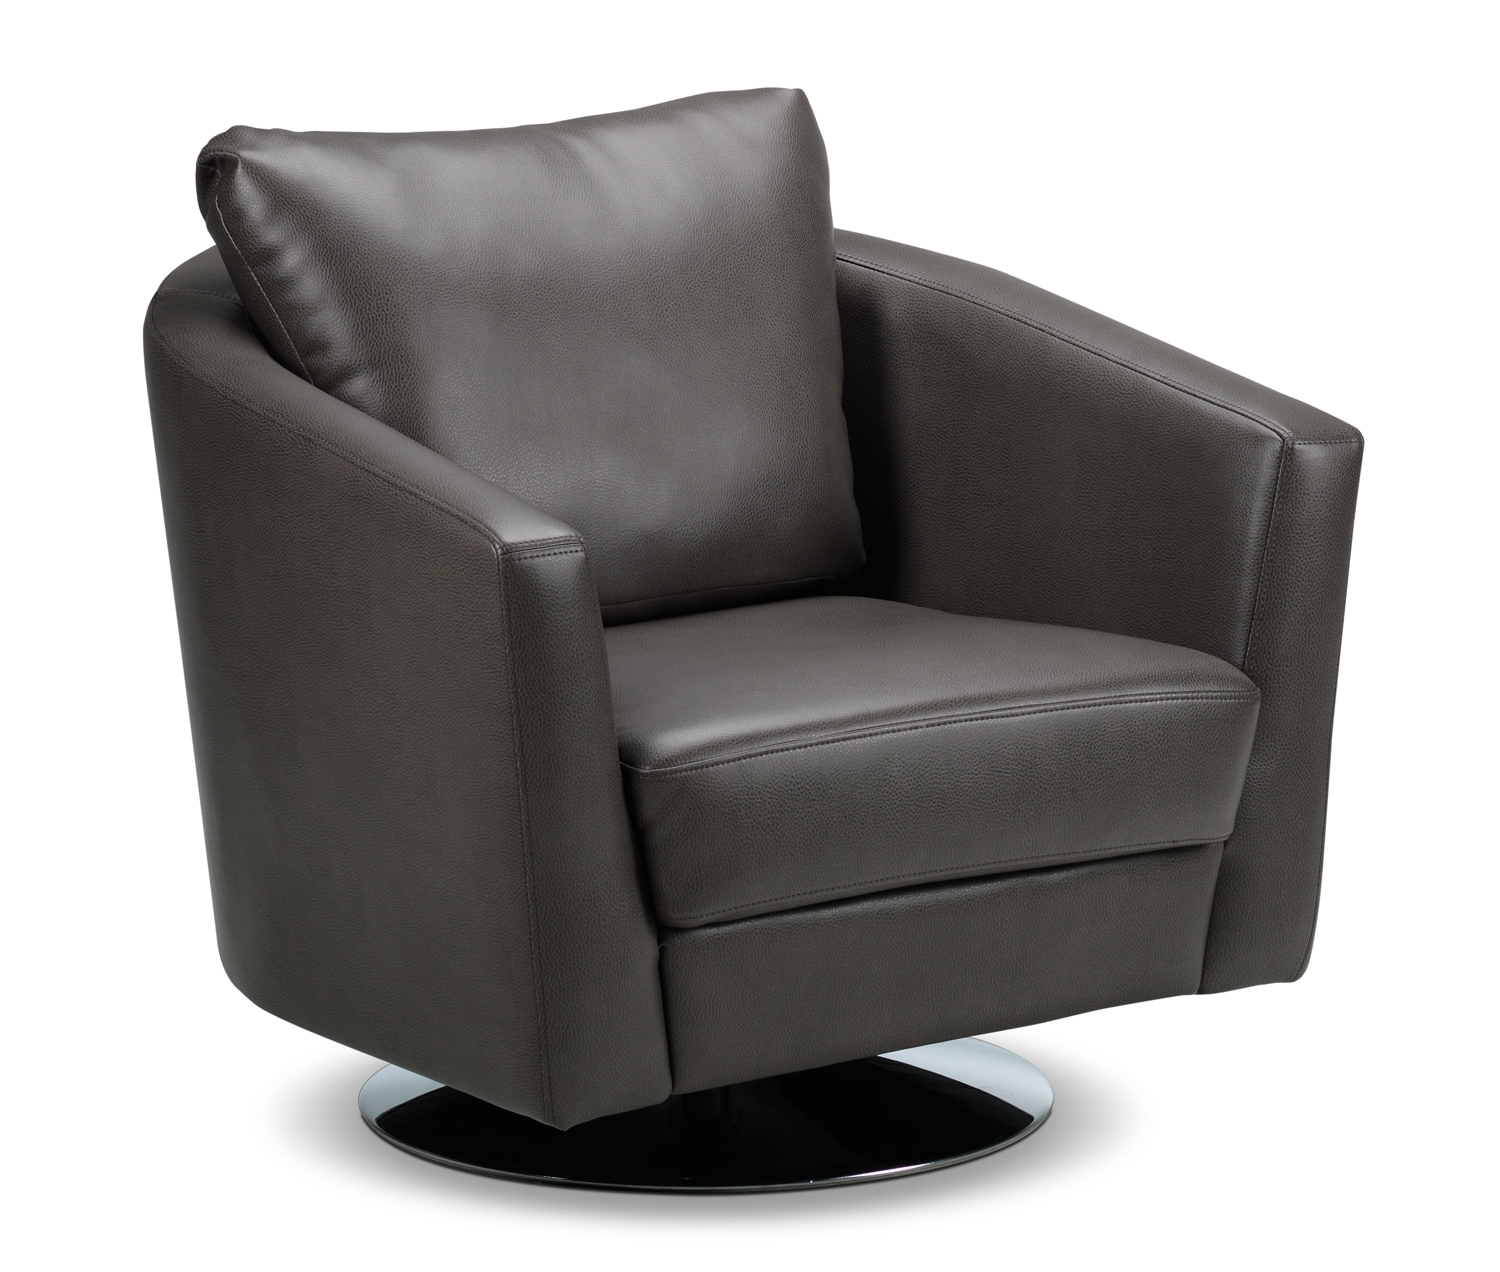 Living Room Furniture - Bel-Air Swivel Chair - Elephant